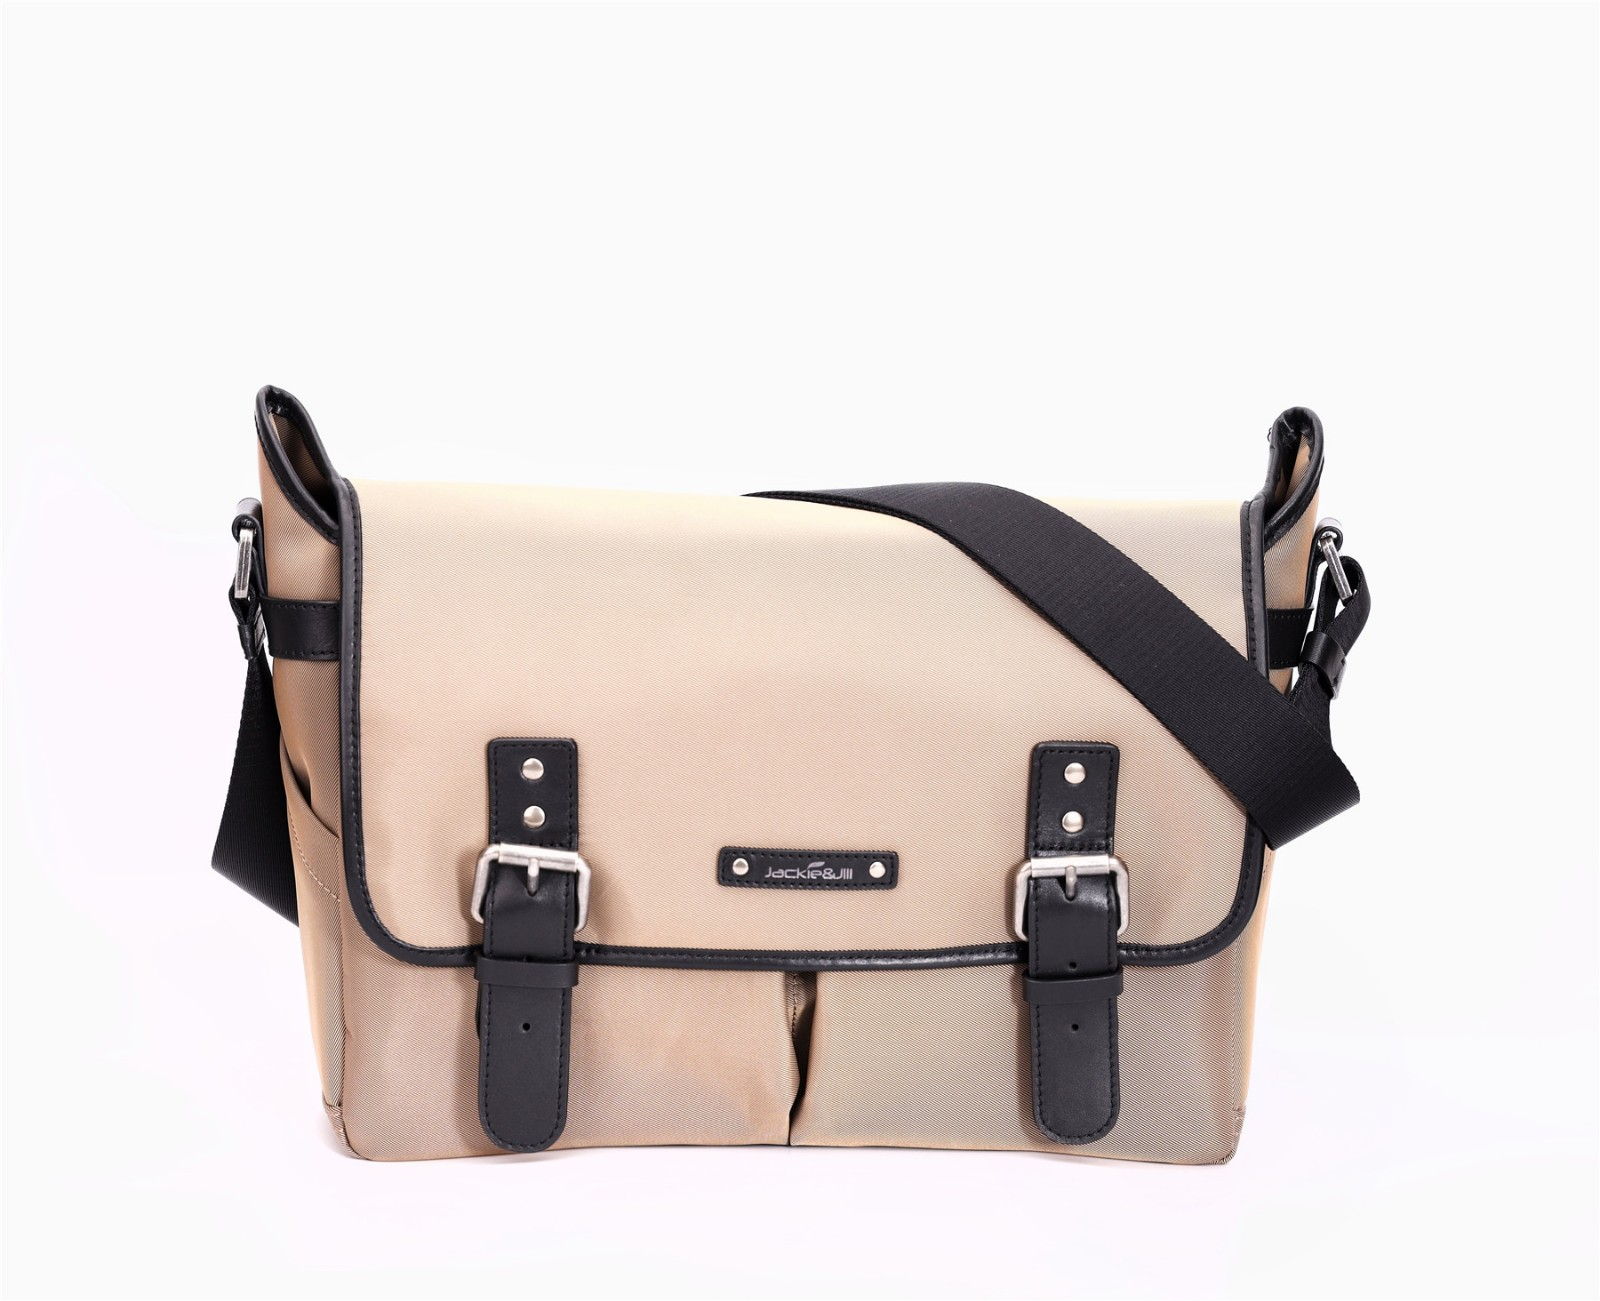 GF bags-Best Leather Messenger Bag Supplier, Mens Fashion Messenger Bag | Gf Bags-4